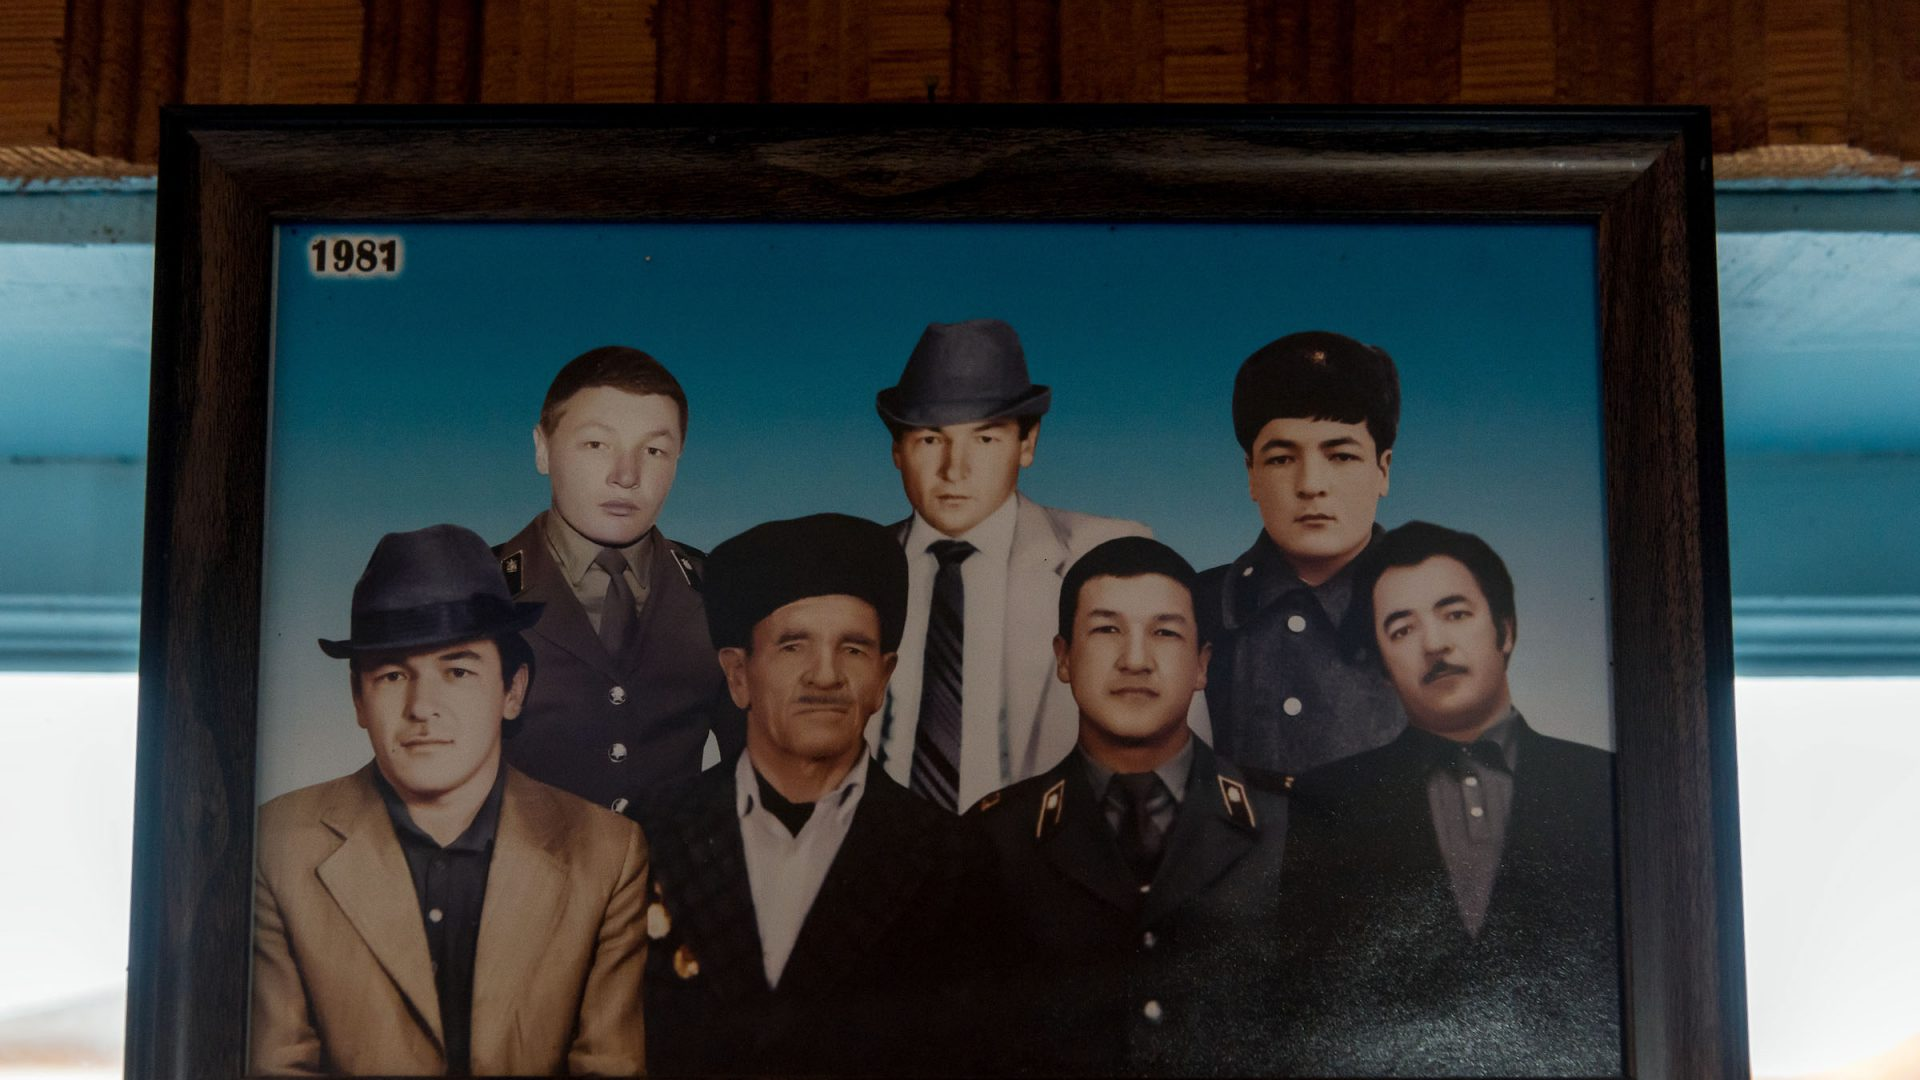 A photo of all six brothers including Narzullo's father (bottom left).